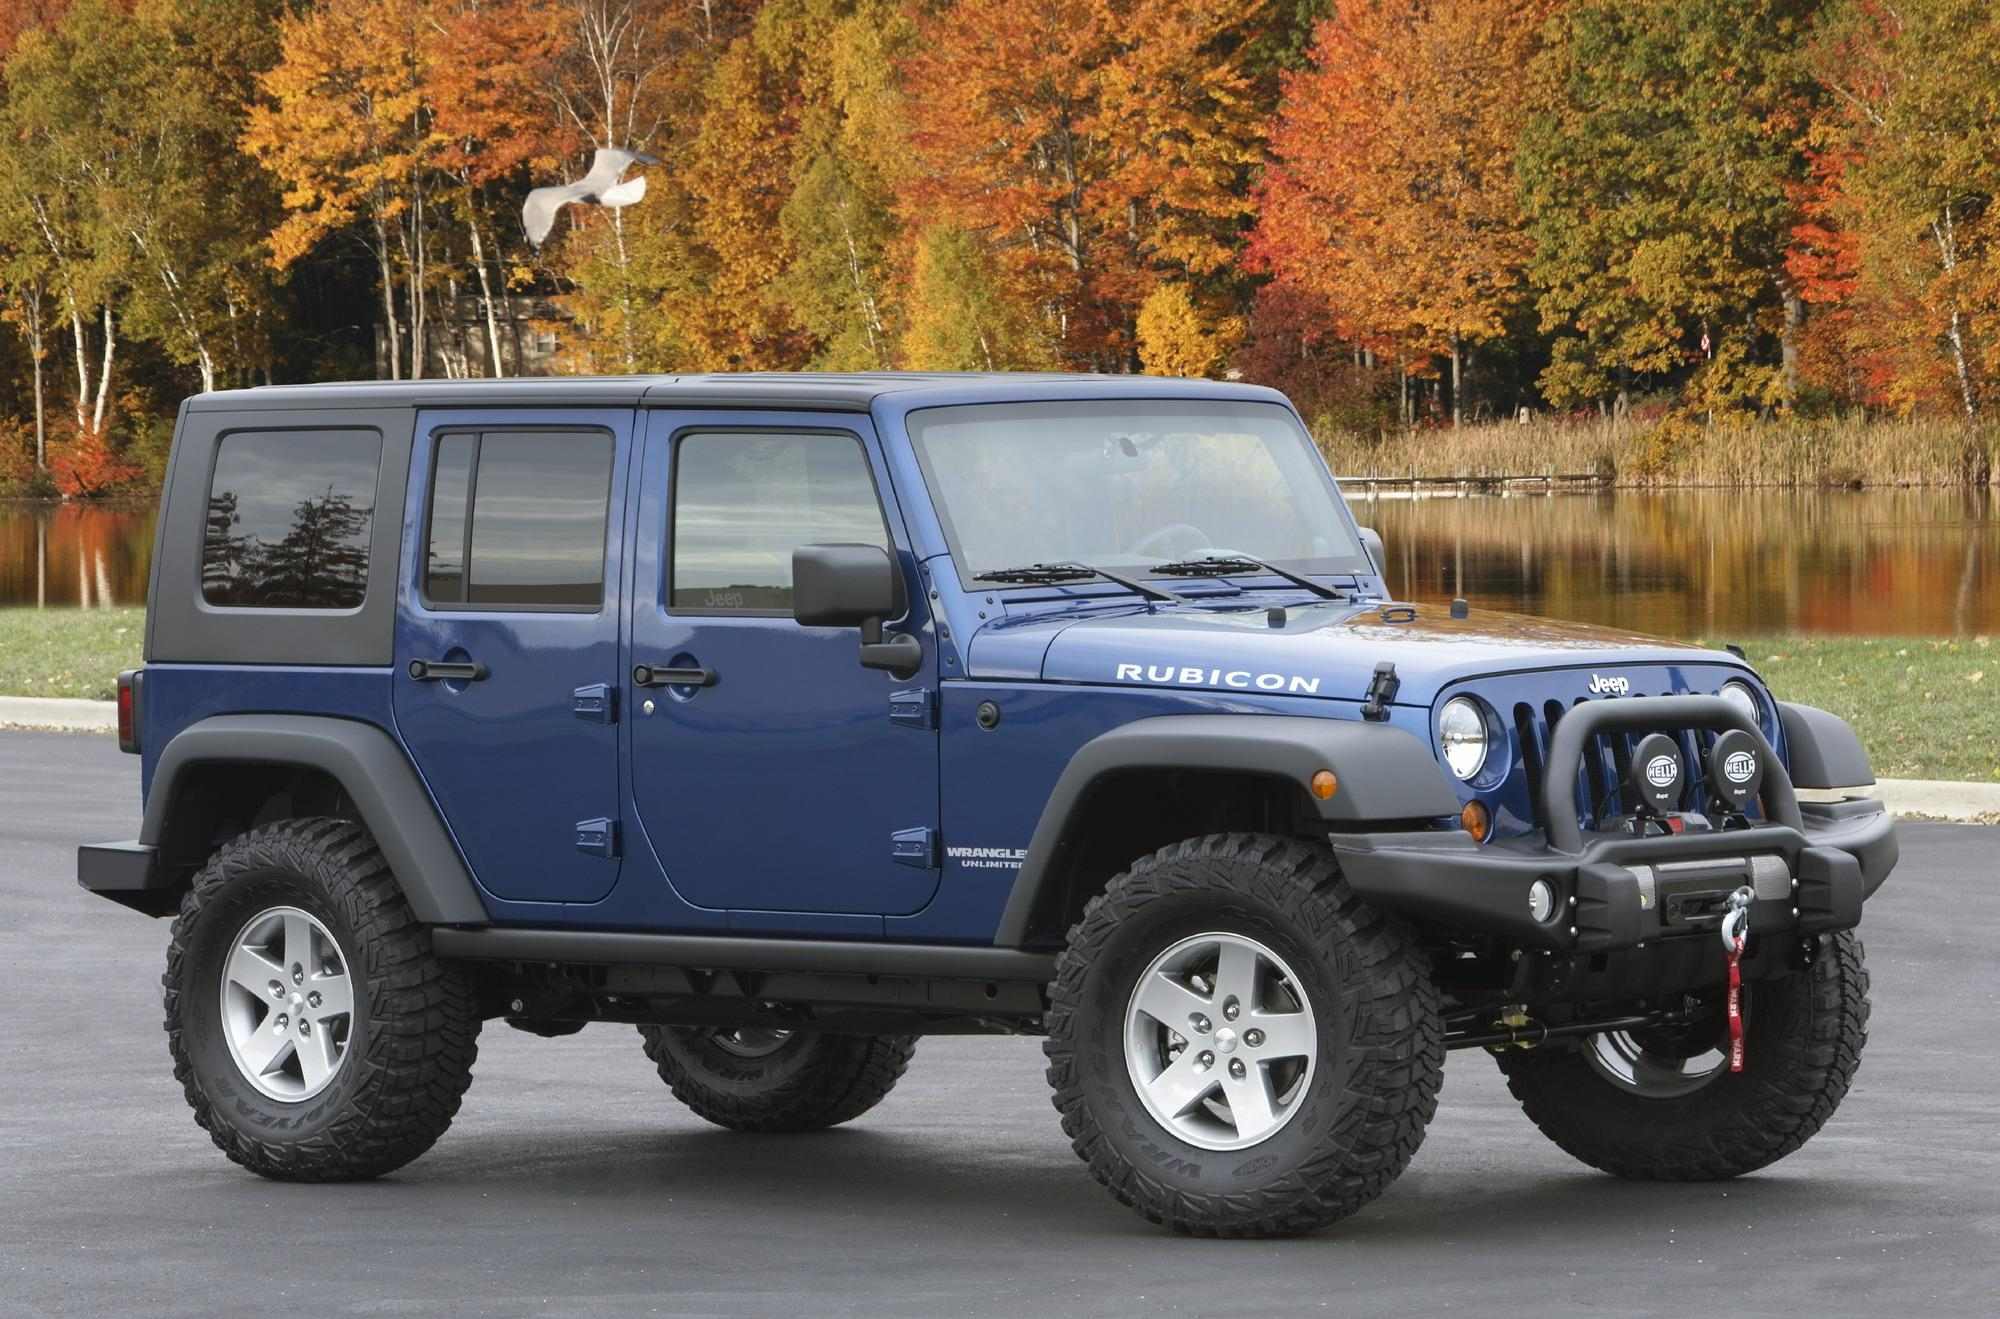 2010 Jeep Wrangler Family Friendly Off Road Edition By Mopar Top Speed Saturn Vue Lift Kit